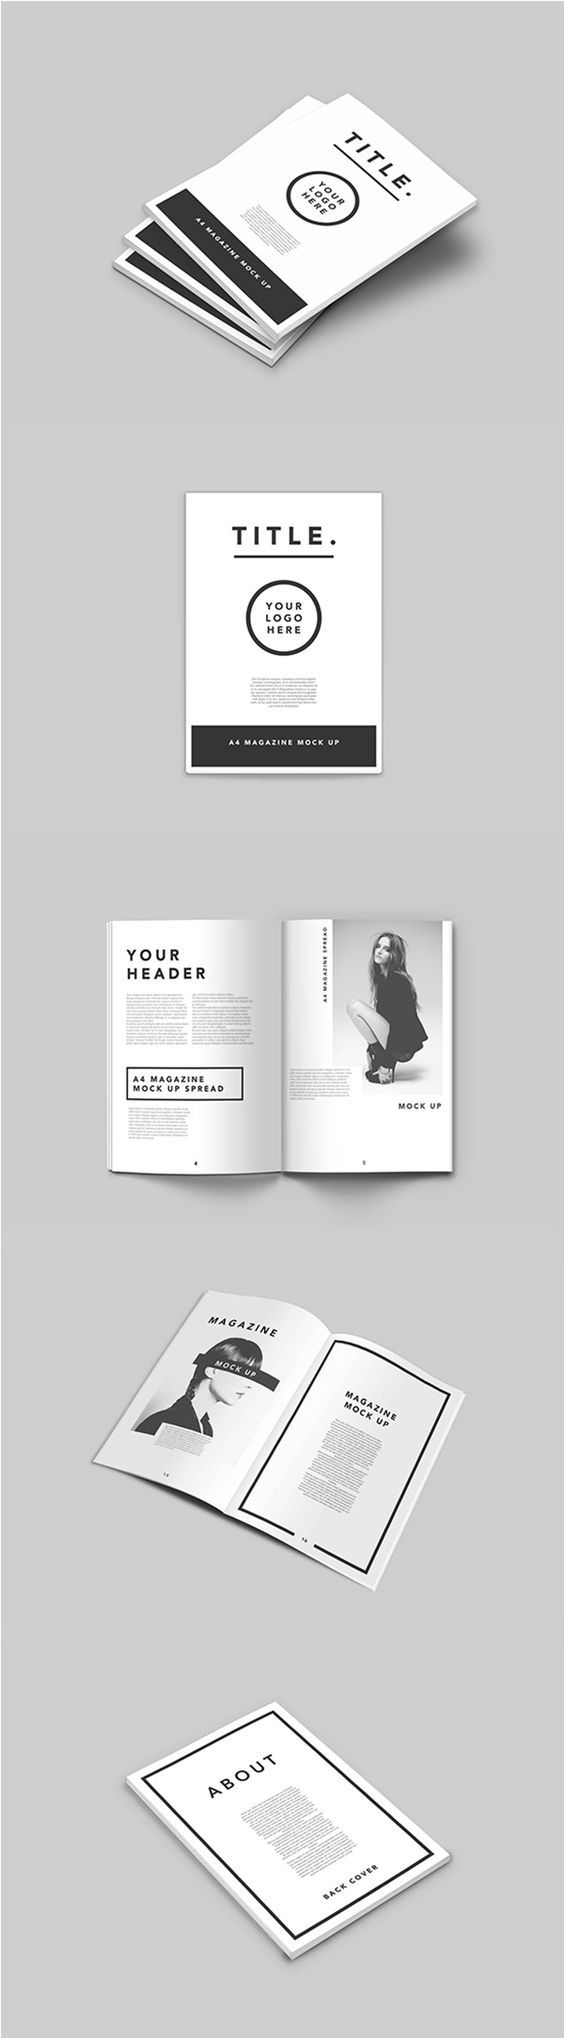 63 best mockup images on Pinterest | Model, Cheddar cheese and Cover ...